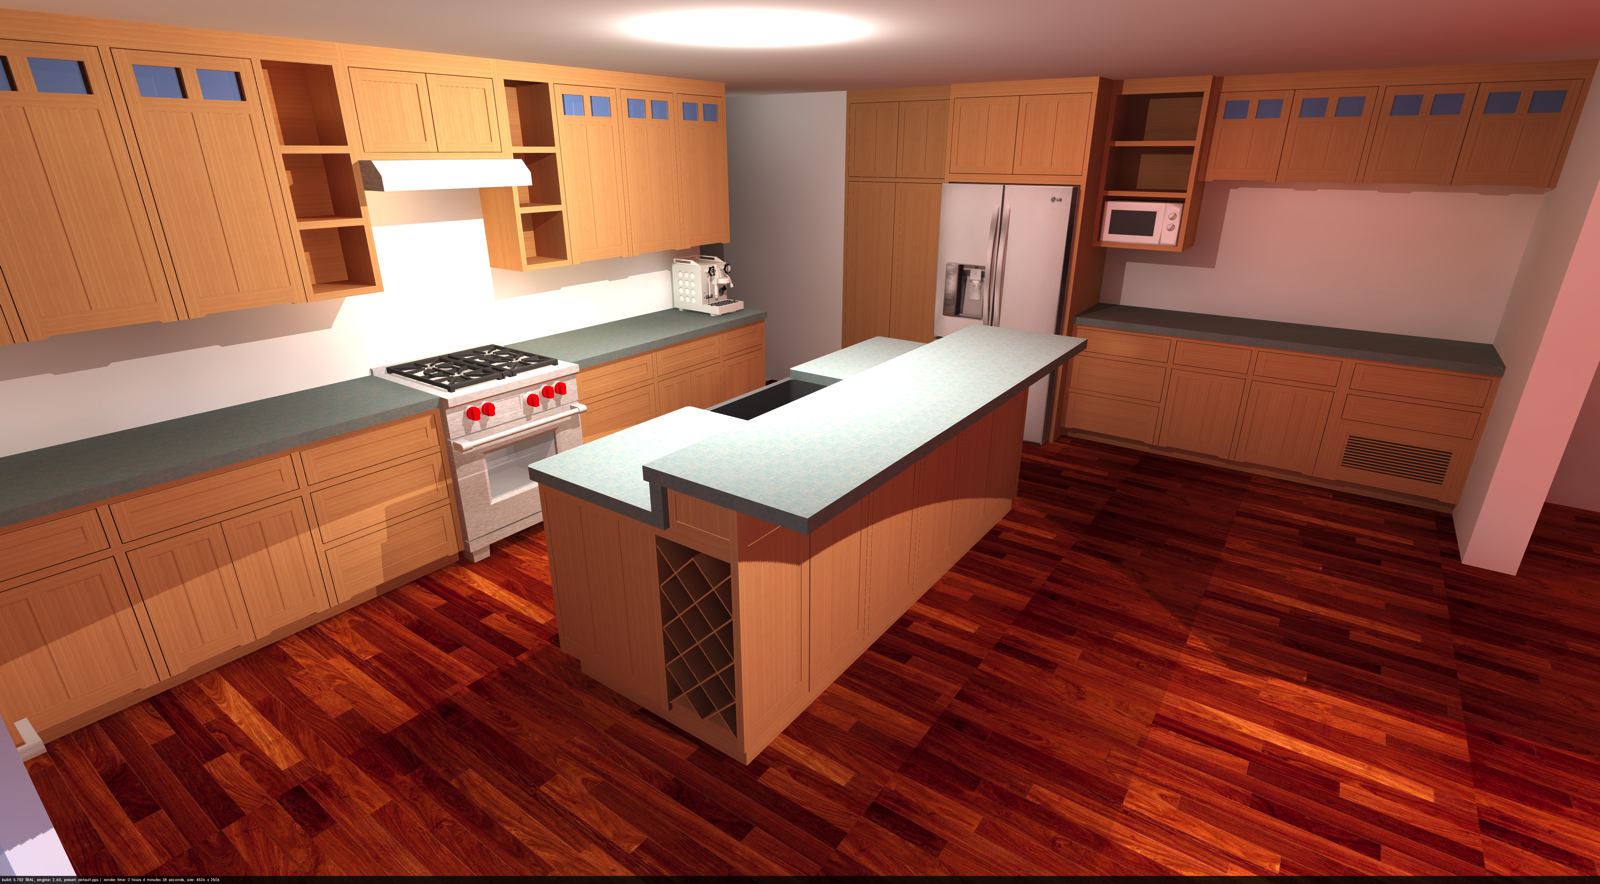 Kitchen v17 2018 04 29 20023000000